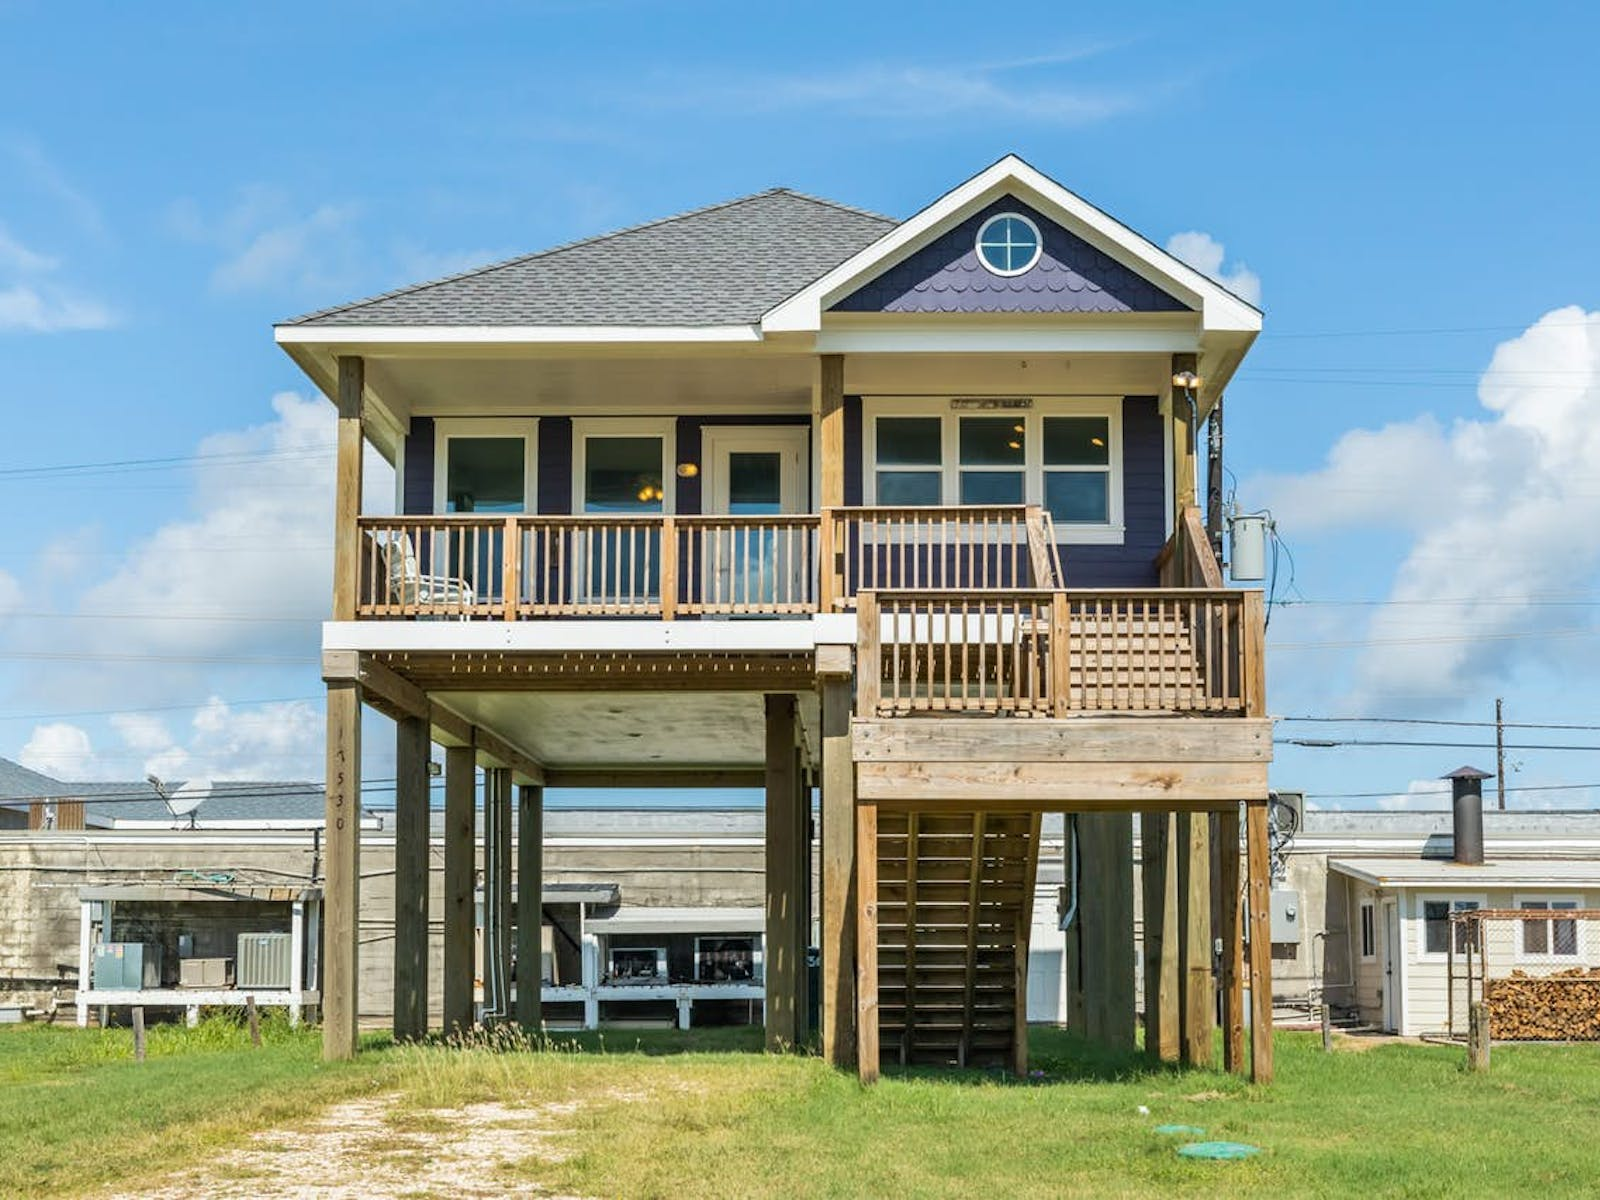 Purple beach house located in Galveston, TX